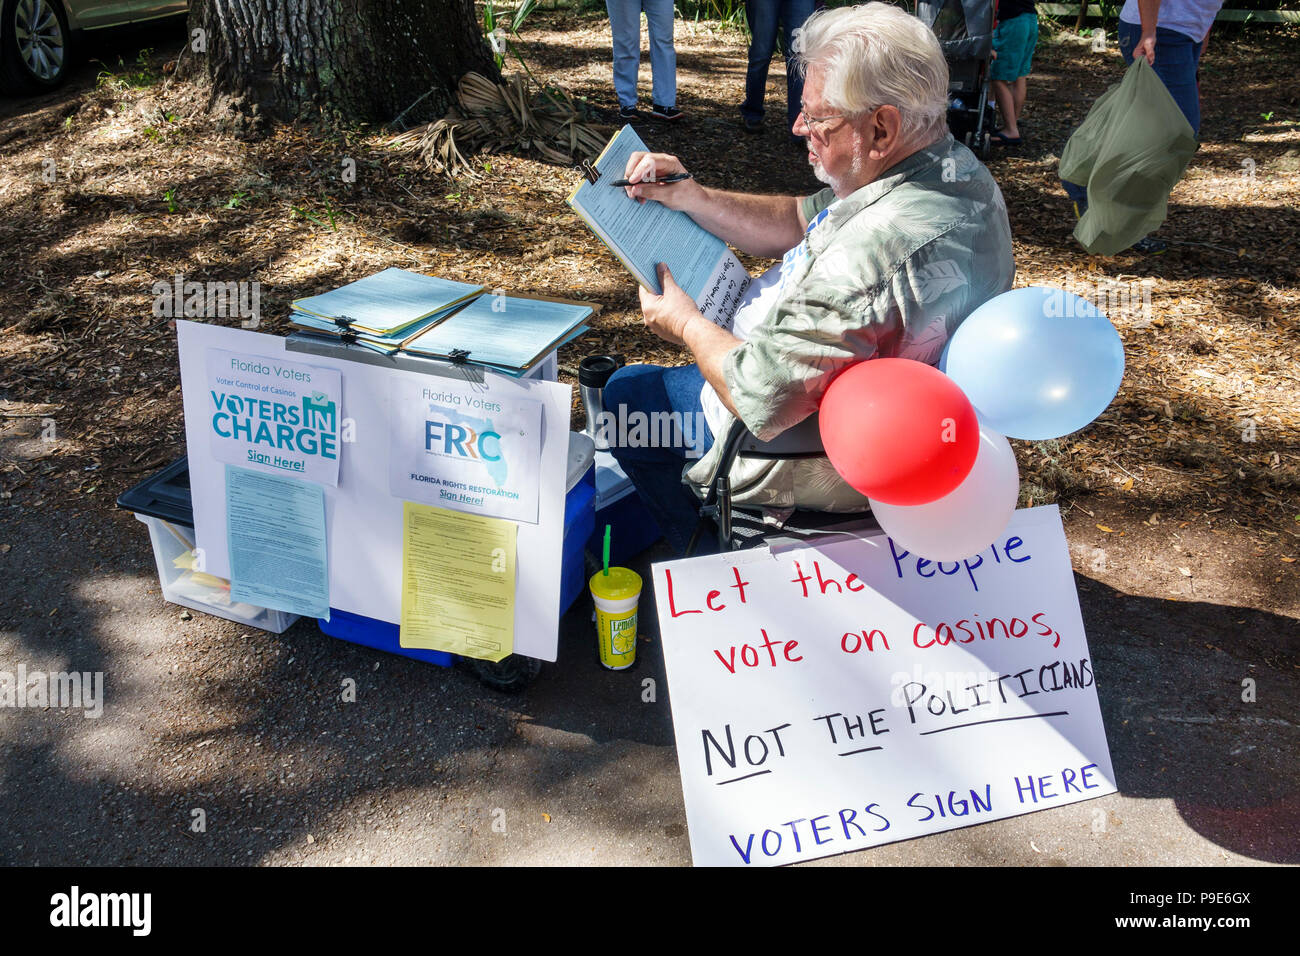 Florida Micanopy Fall Harvest Festival annual small town community event senior man seeking signatures voter petition casino gambling issue Voter Cont - Stock Image